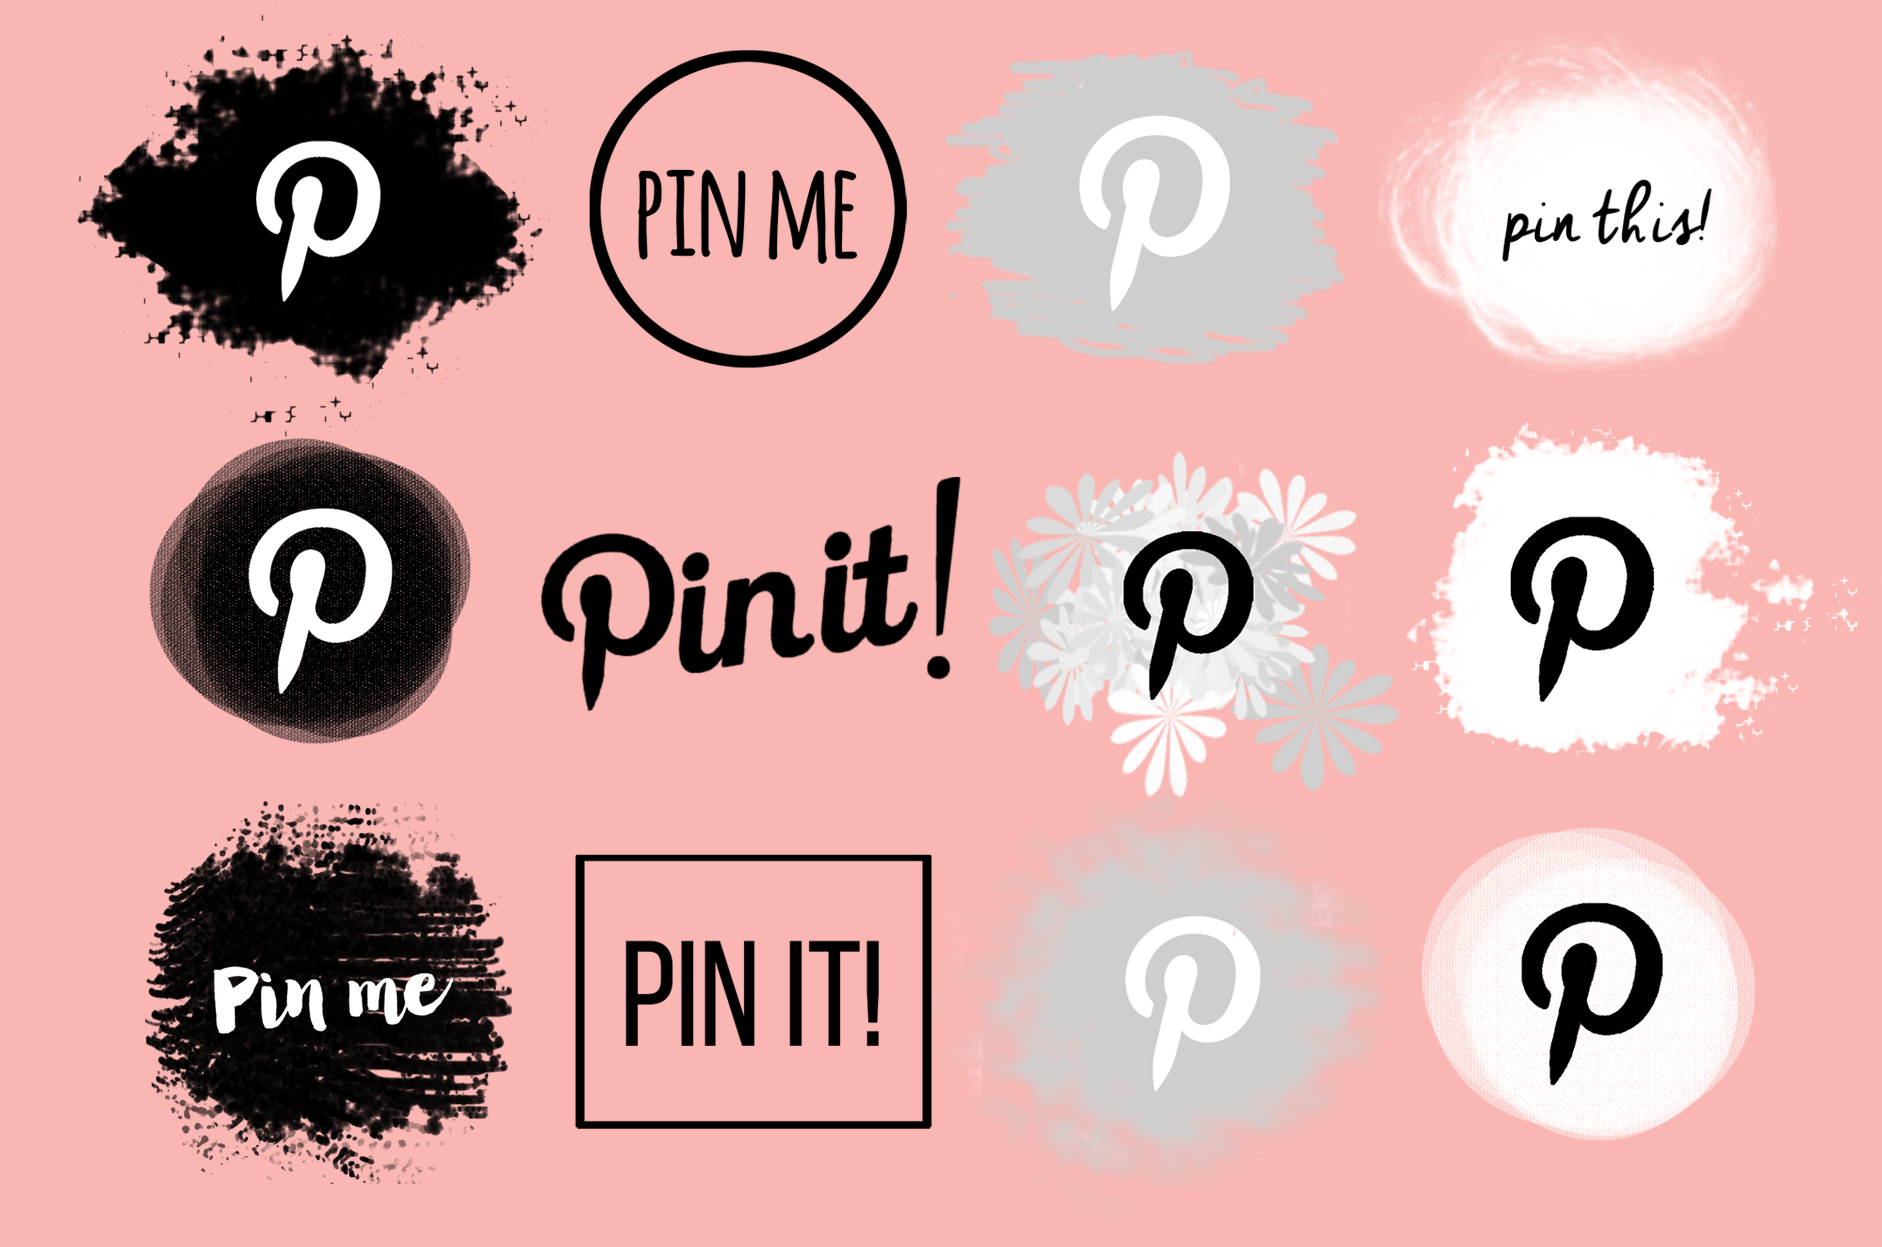 Download these buttons for free by clicking on the image